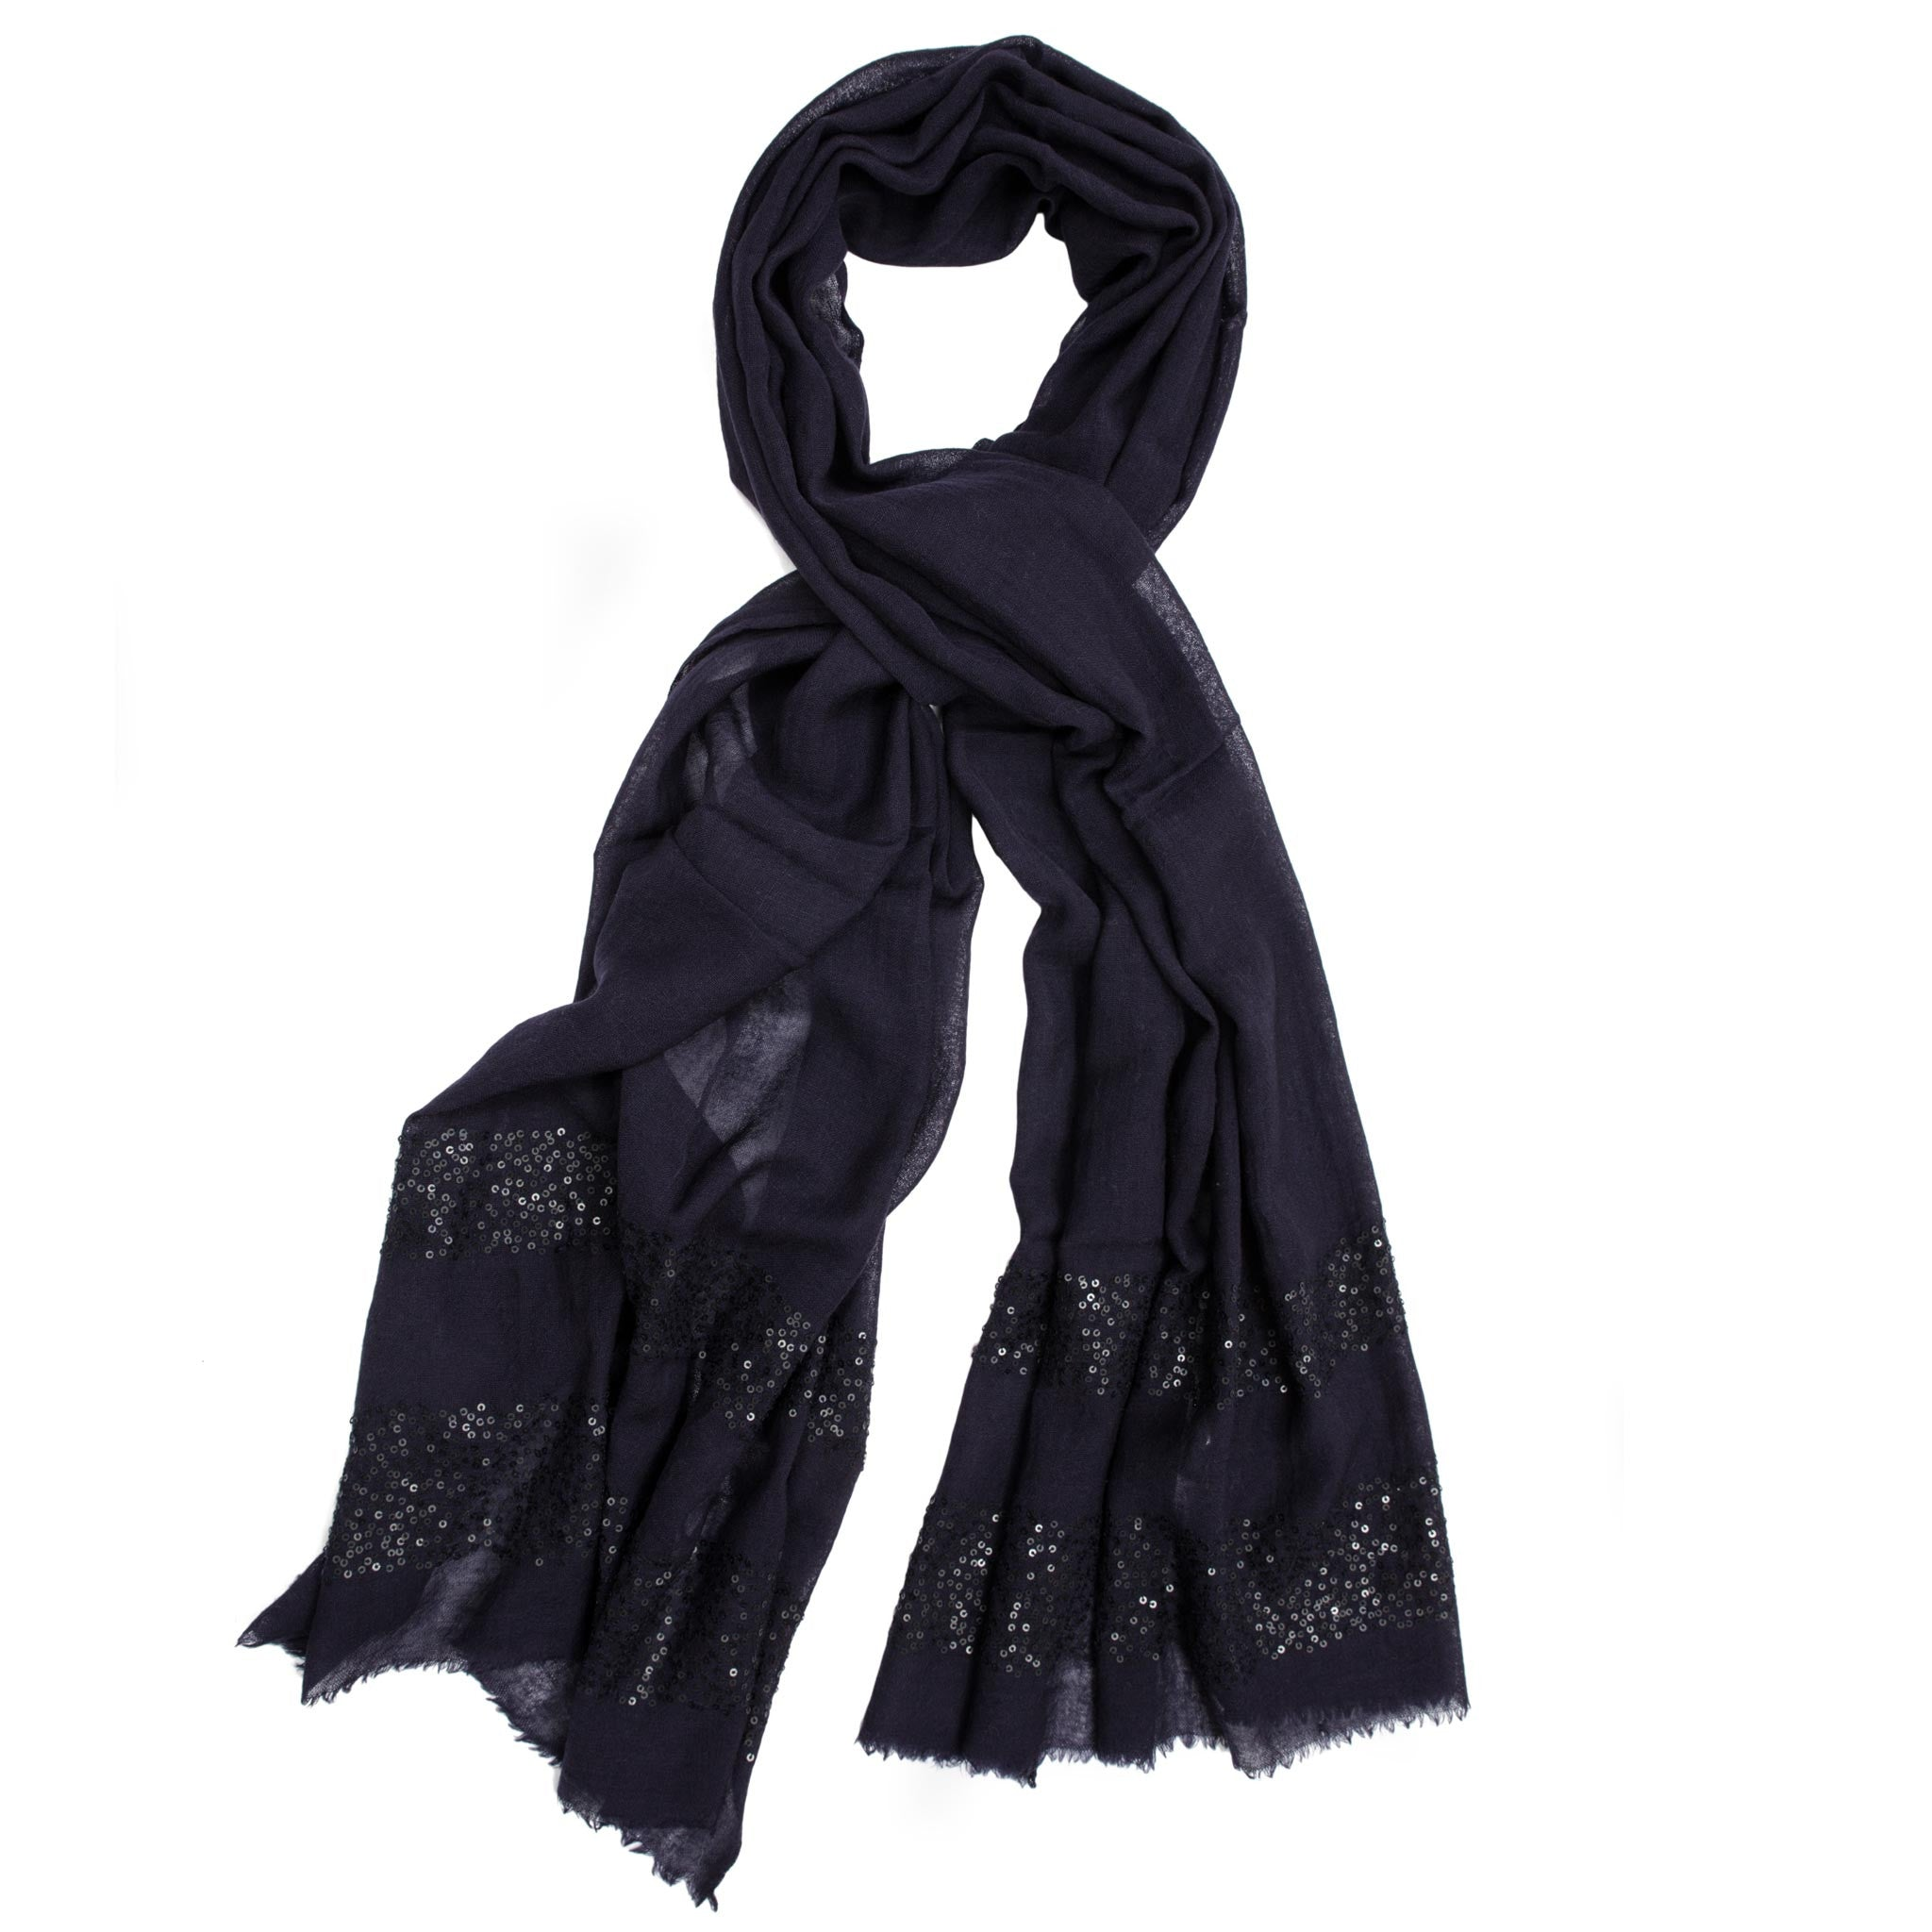 You searched for: navy blue scarf! Etsy is the home to thousands of handmade, vintage, and one-of-a-kind products and gifts related to your search. No matter what you're looking for or where you are in the world, our global marketplace of sellers can help you find unique and affordable options. Let's get started!